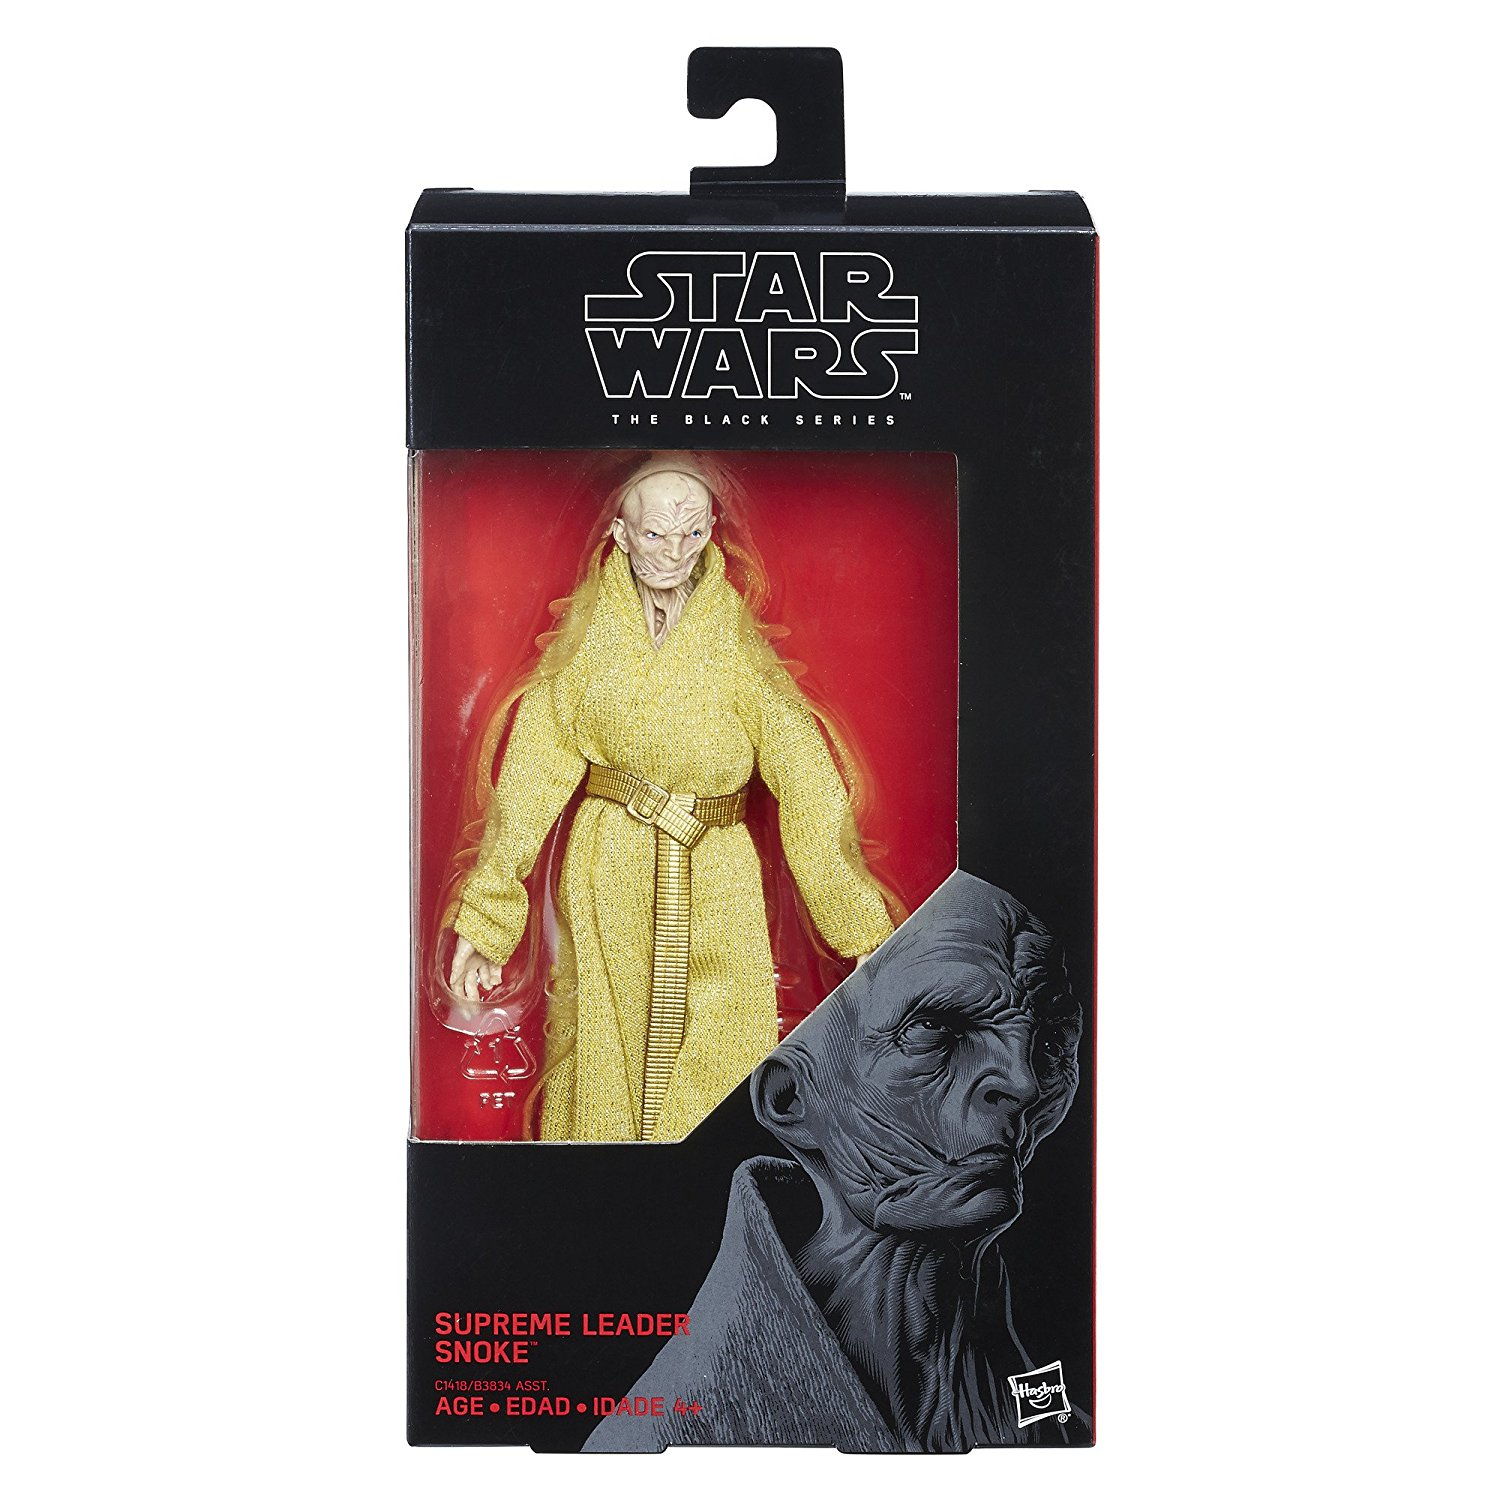 54_snoke-box.j<br />pg